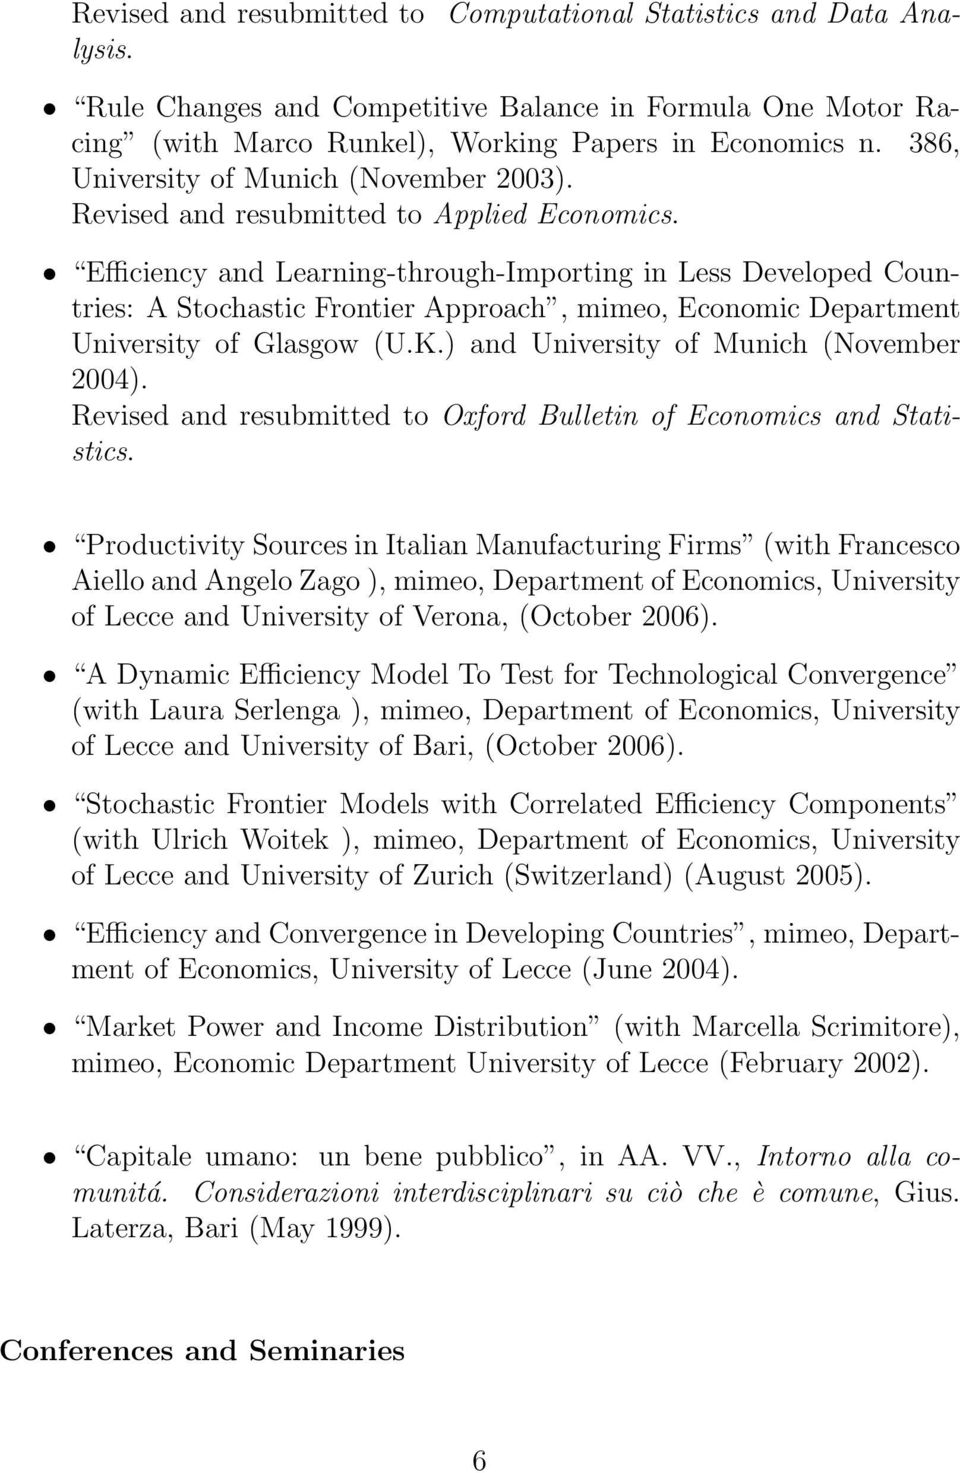 Efficiency and Learning-through-Importing in Less Developed Countries: A Stochastic Frontier Approach, mimeo, Economic Department University of Glasgow (U.K.) and University of Munich (November 2004).